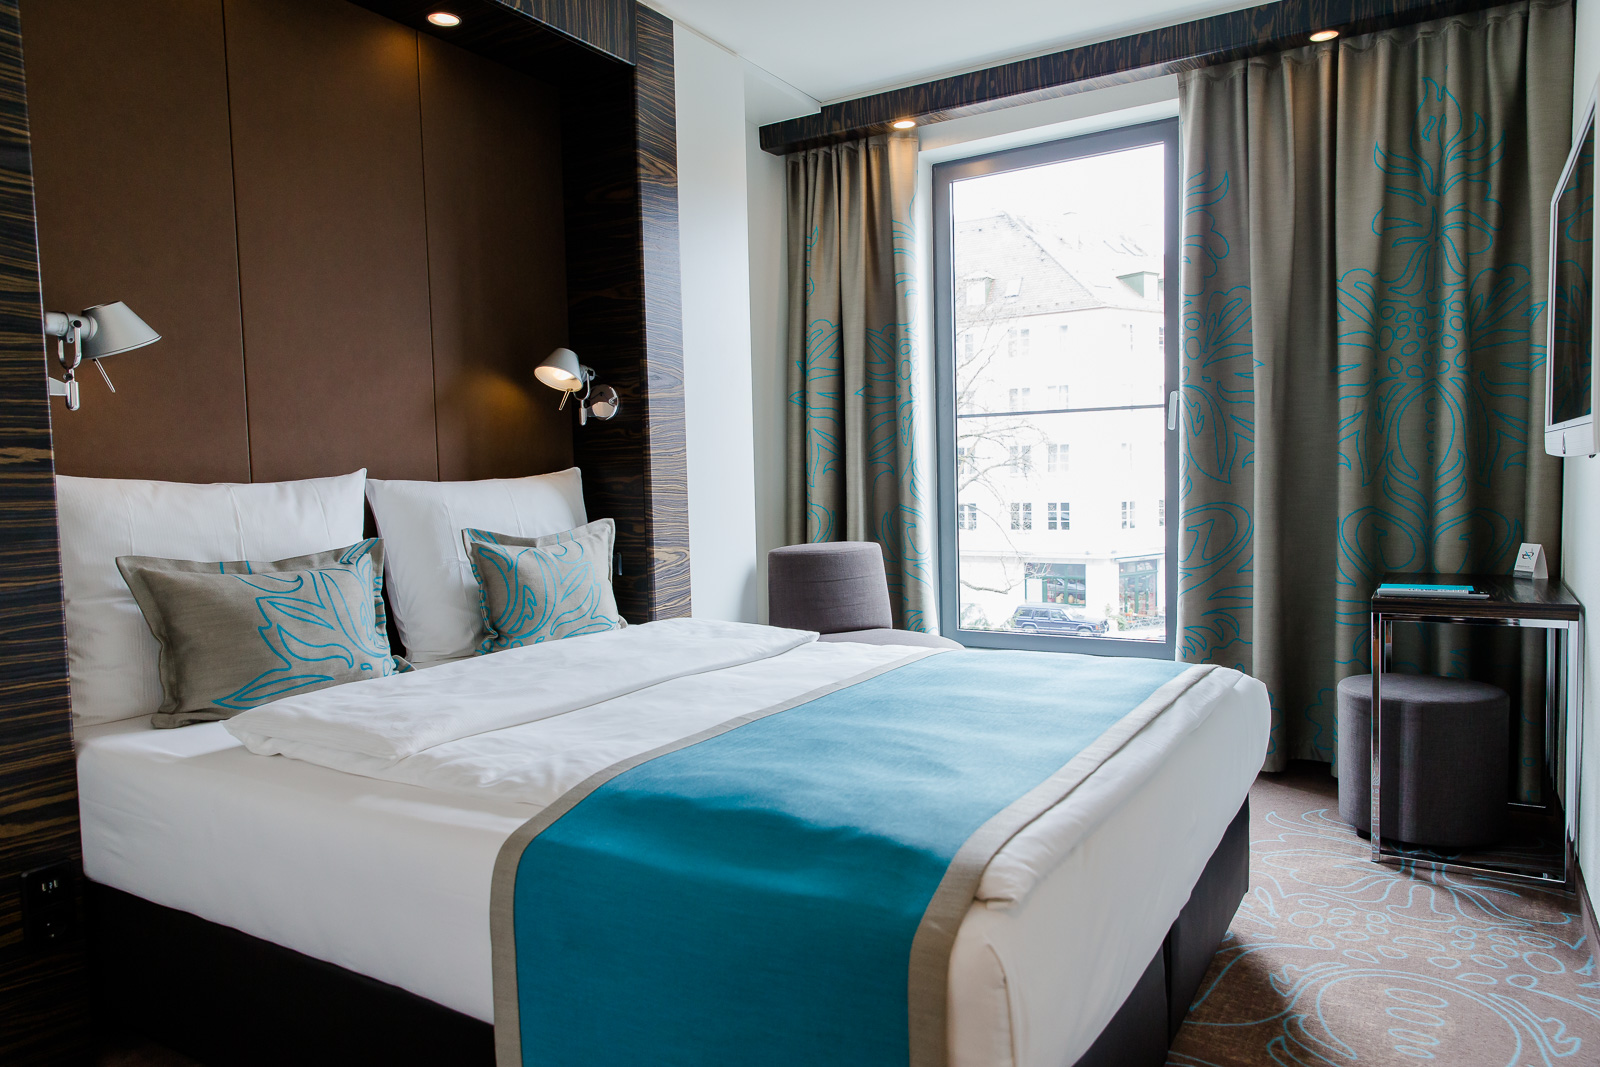 Hotel One Garching Hotel Munich Sendlinger Tor Motel One Design Hotels Munich